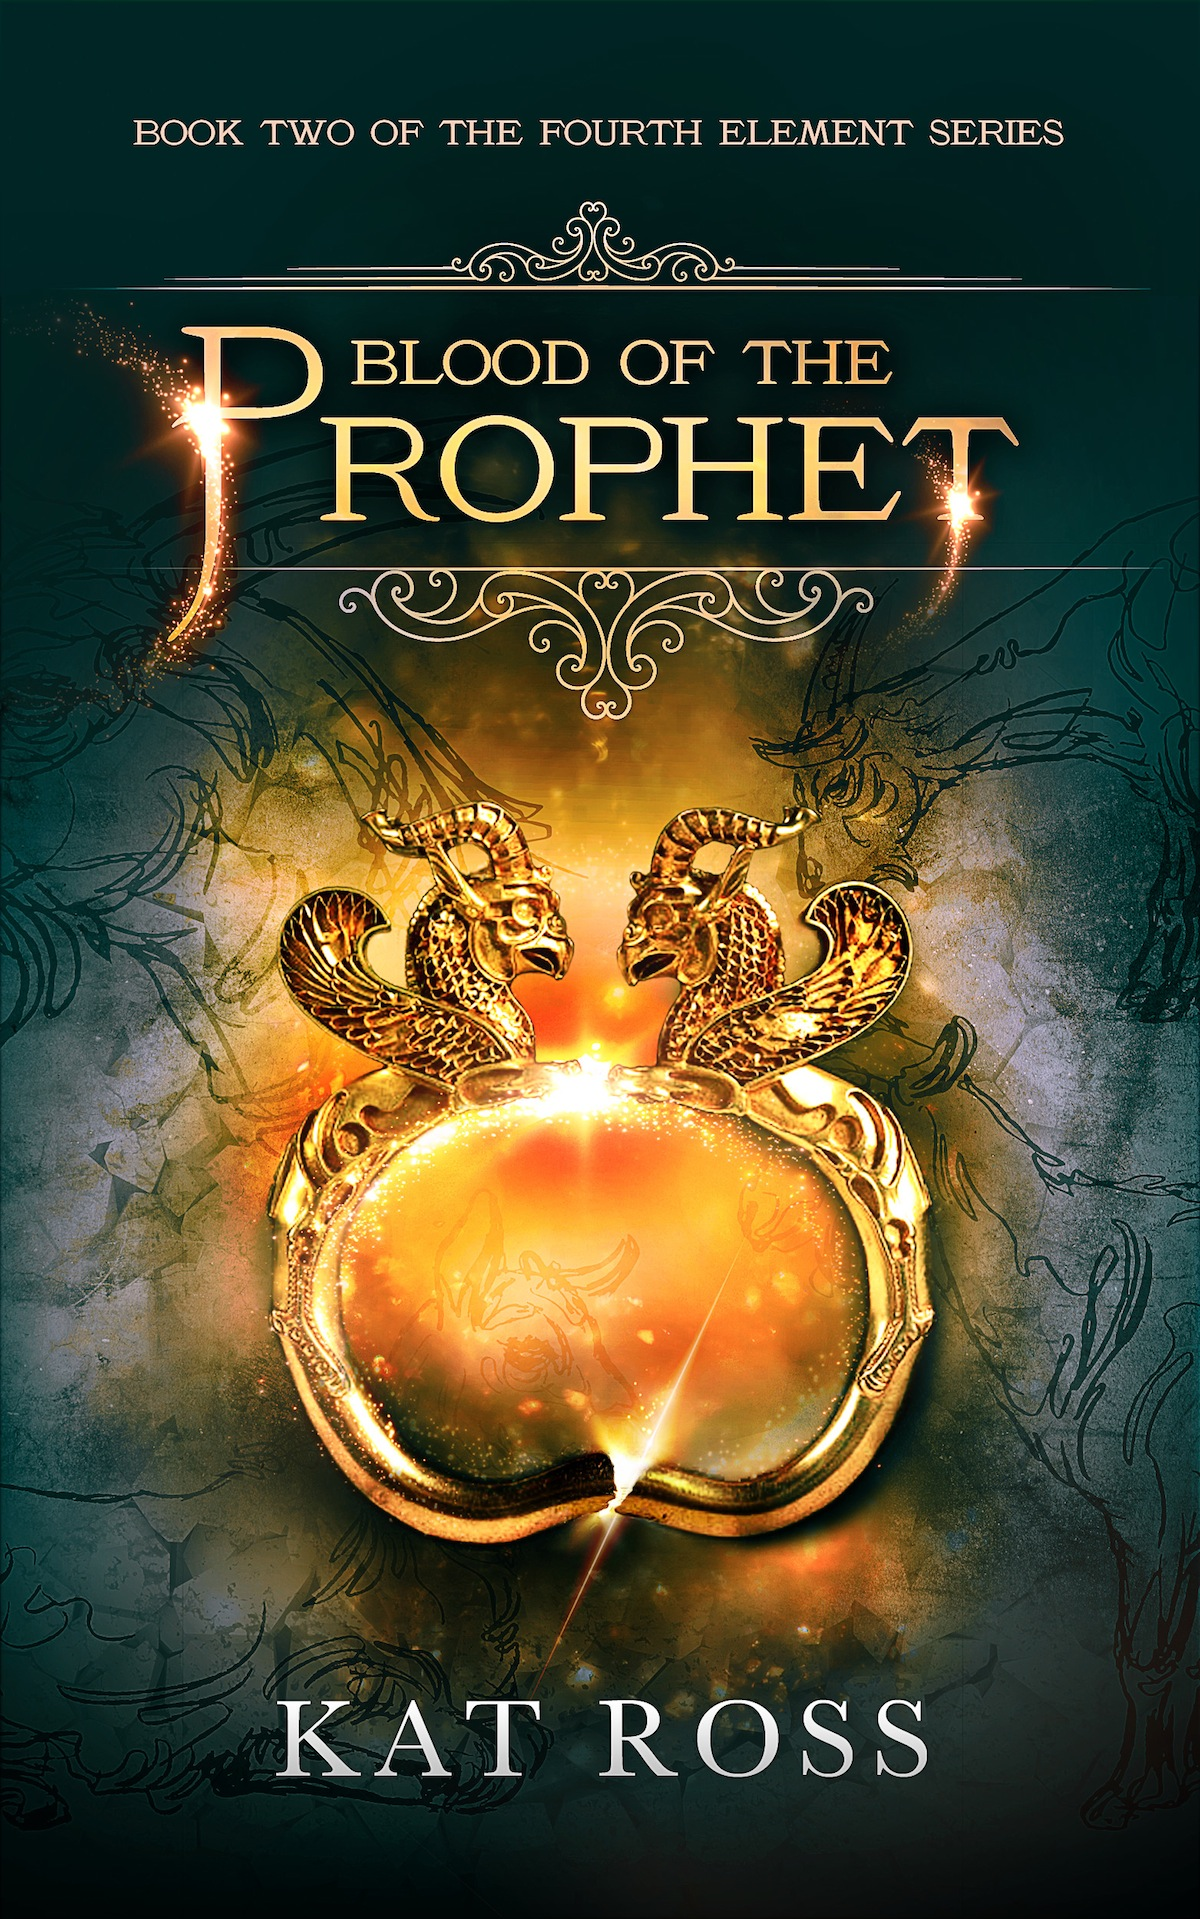 Blood of the Prophet - Ebook Small